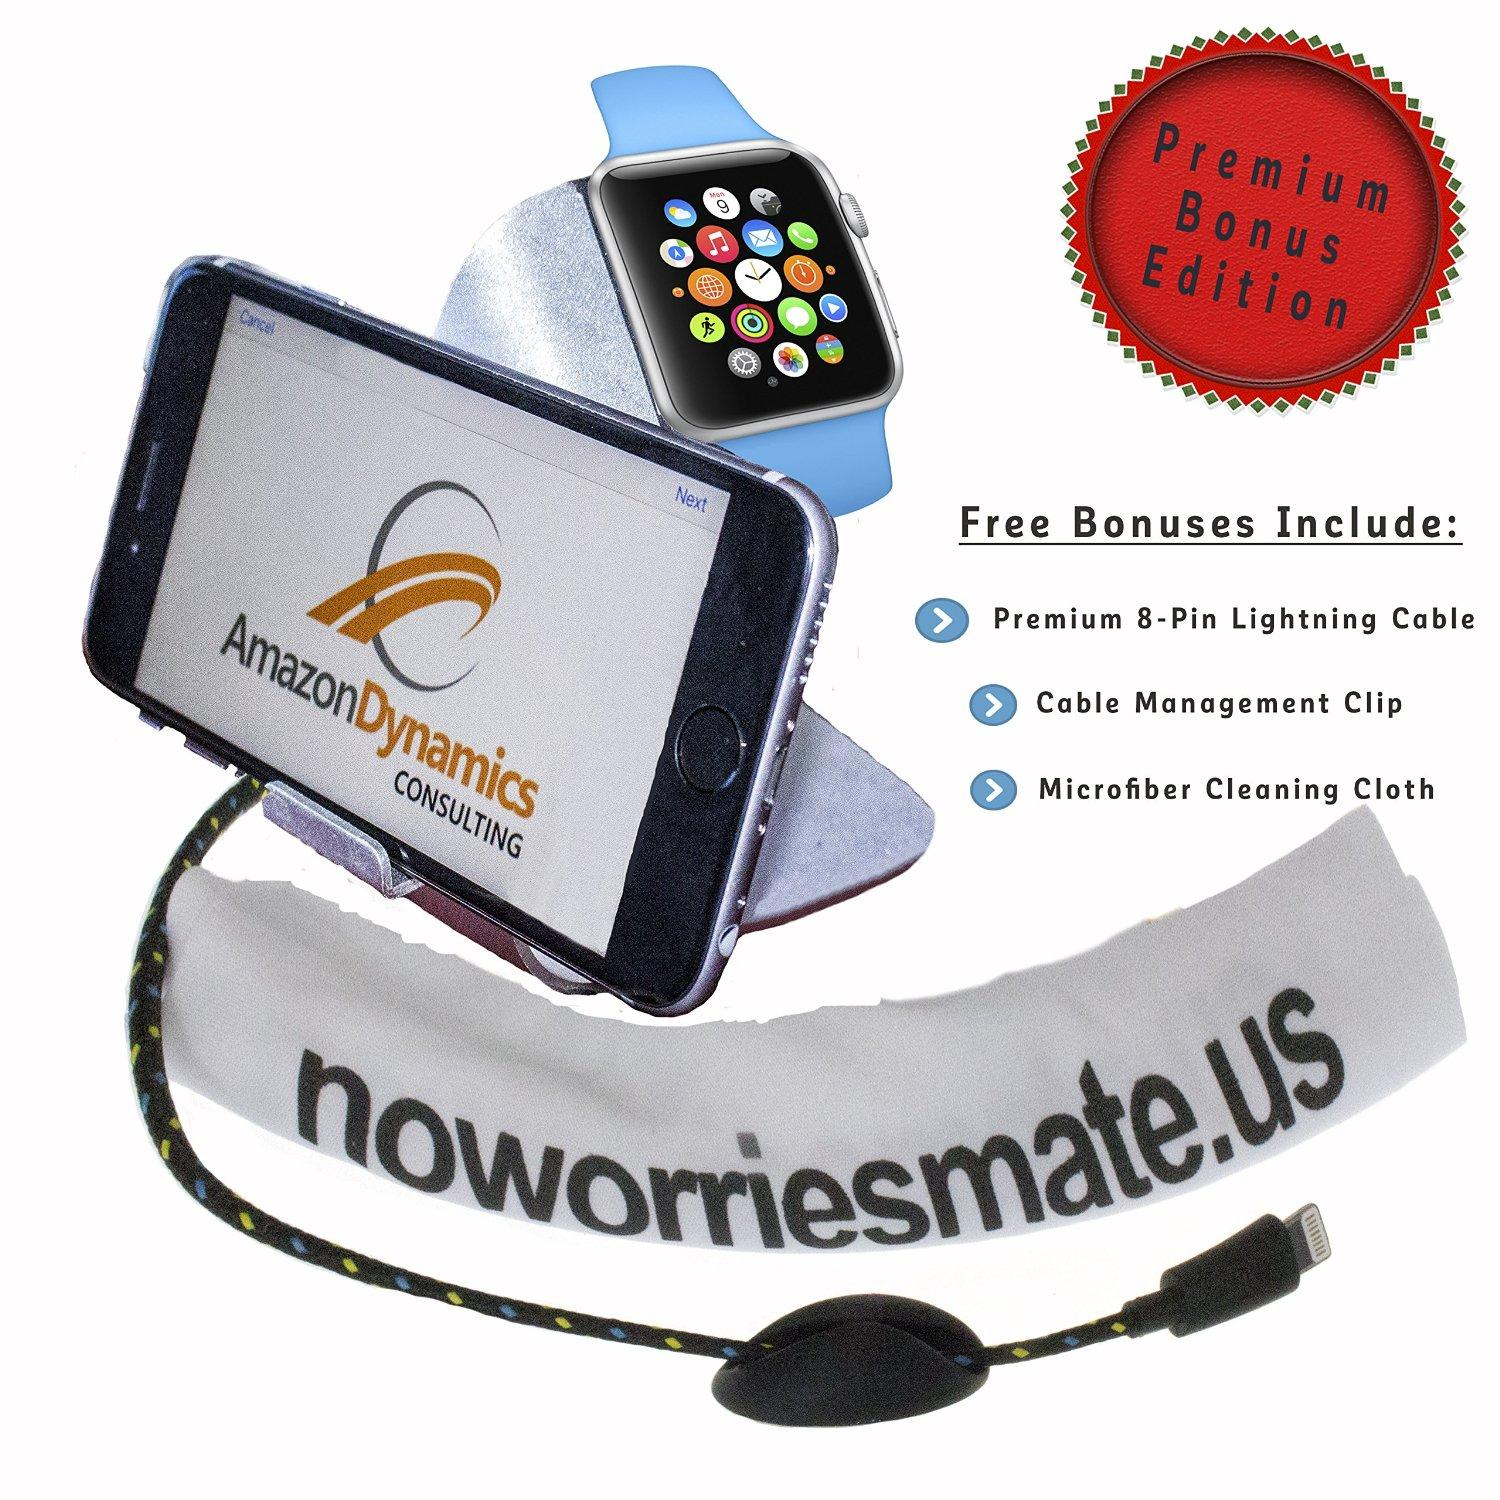 Free Noworriesmate Apple Watch & iPhone Charging Stand